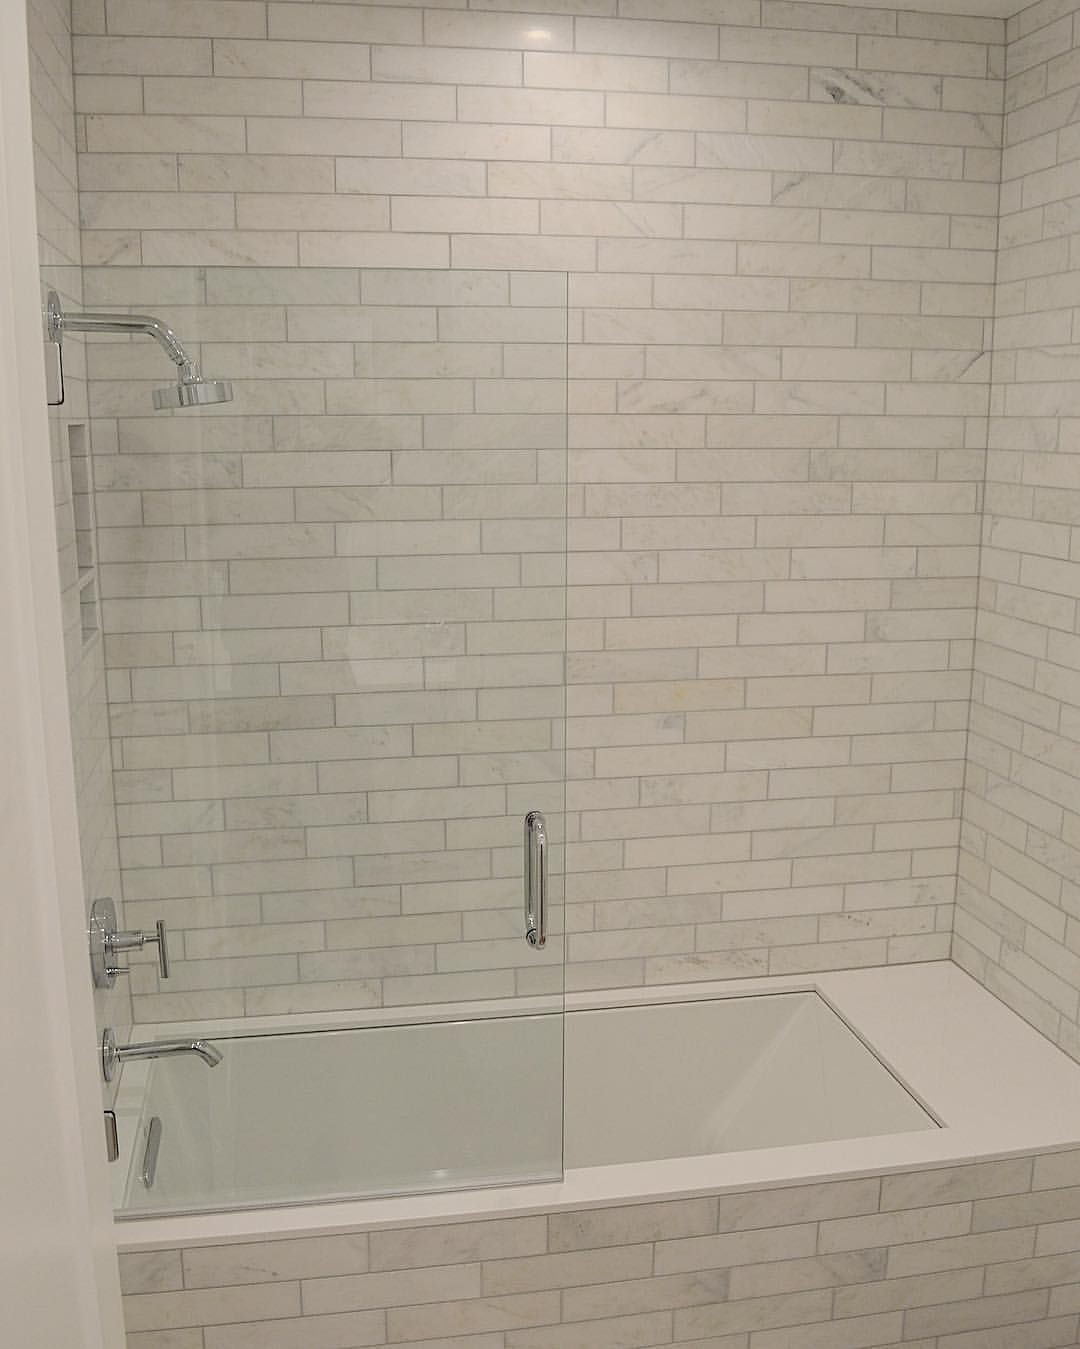 Marbel tile tub surround with gray grout | Bathroom | Pinterest ...